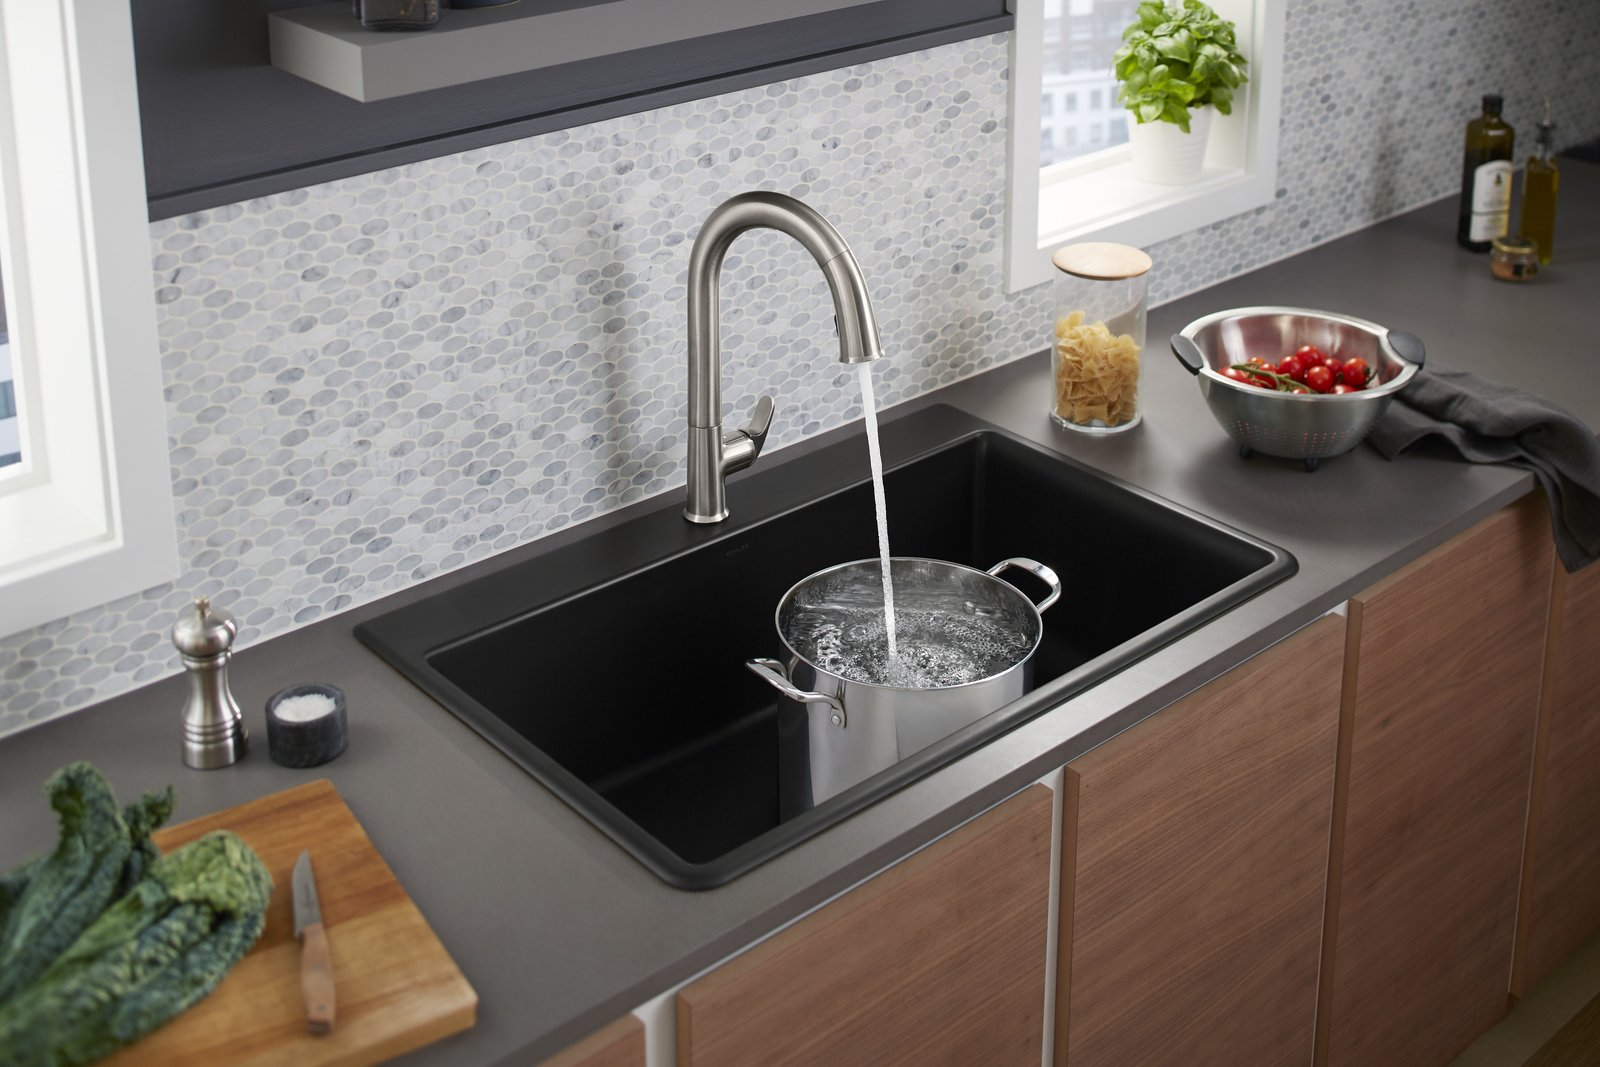 Kohler Konnect Faucet.  Photo 6 of 10 in Trend Report: The Internet Settles Into Our Appliances